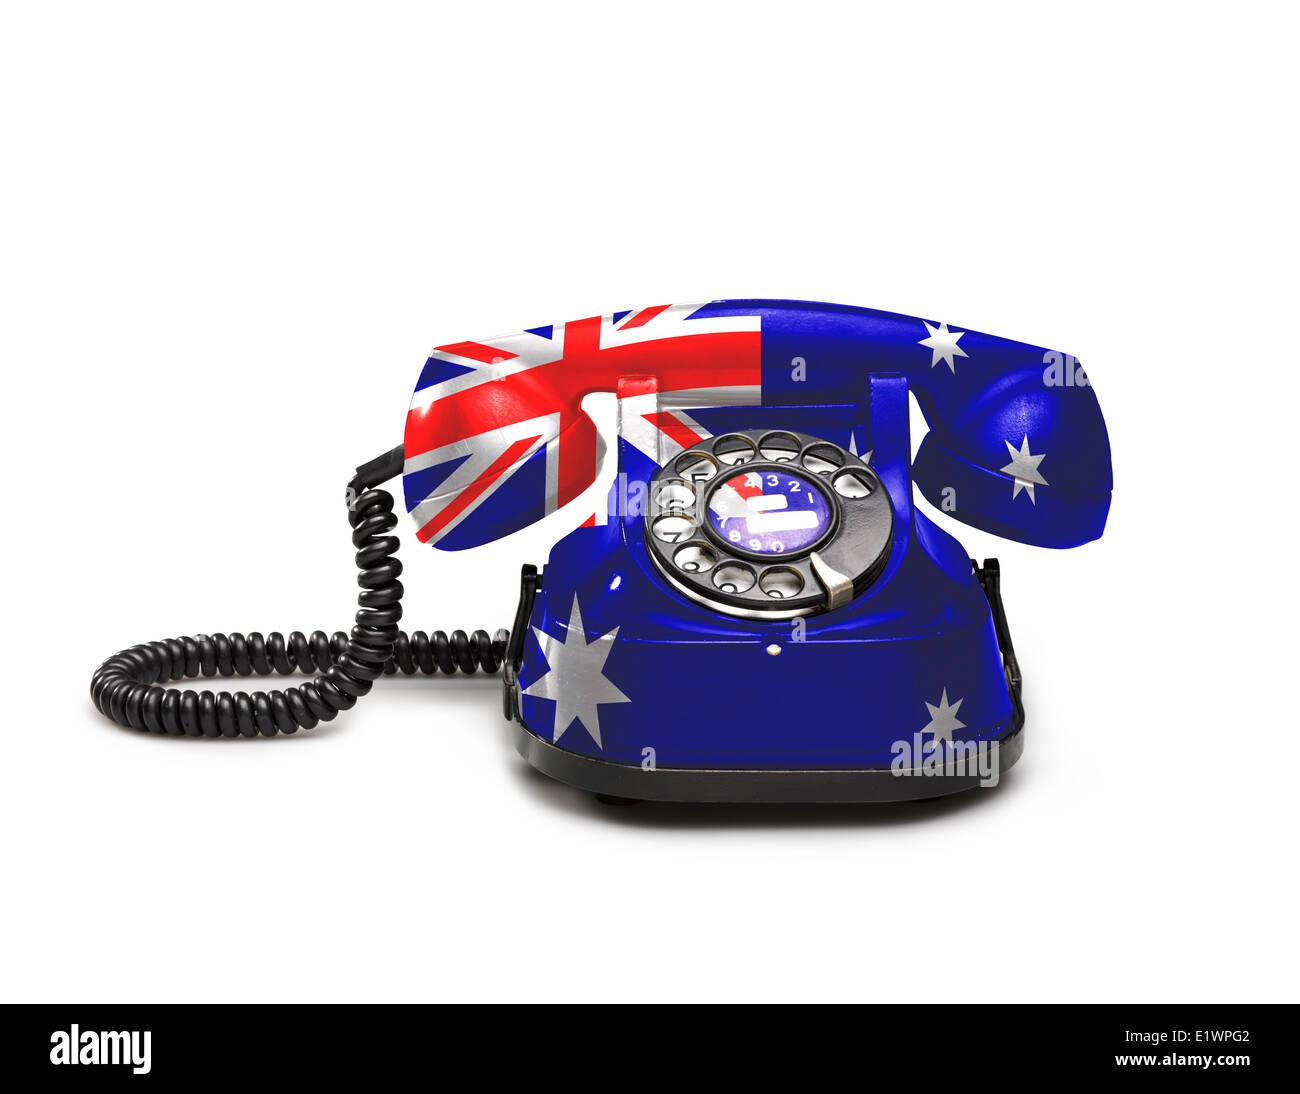 Australia Flag On Old Background Stockfotos & Australia Flag On Old ...